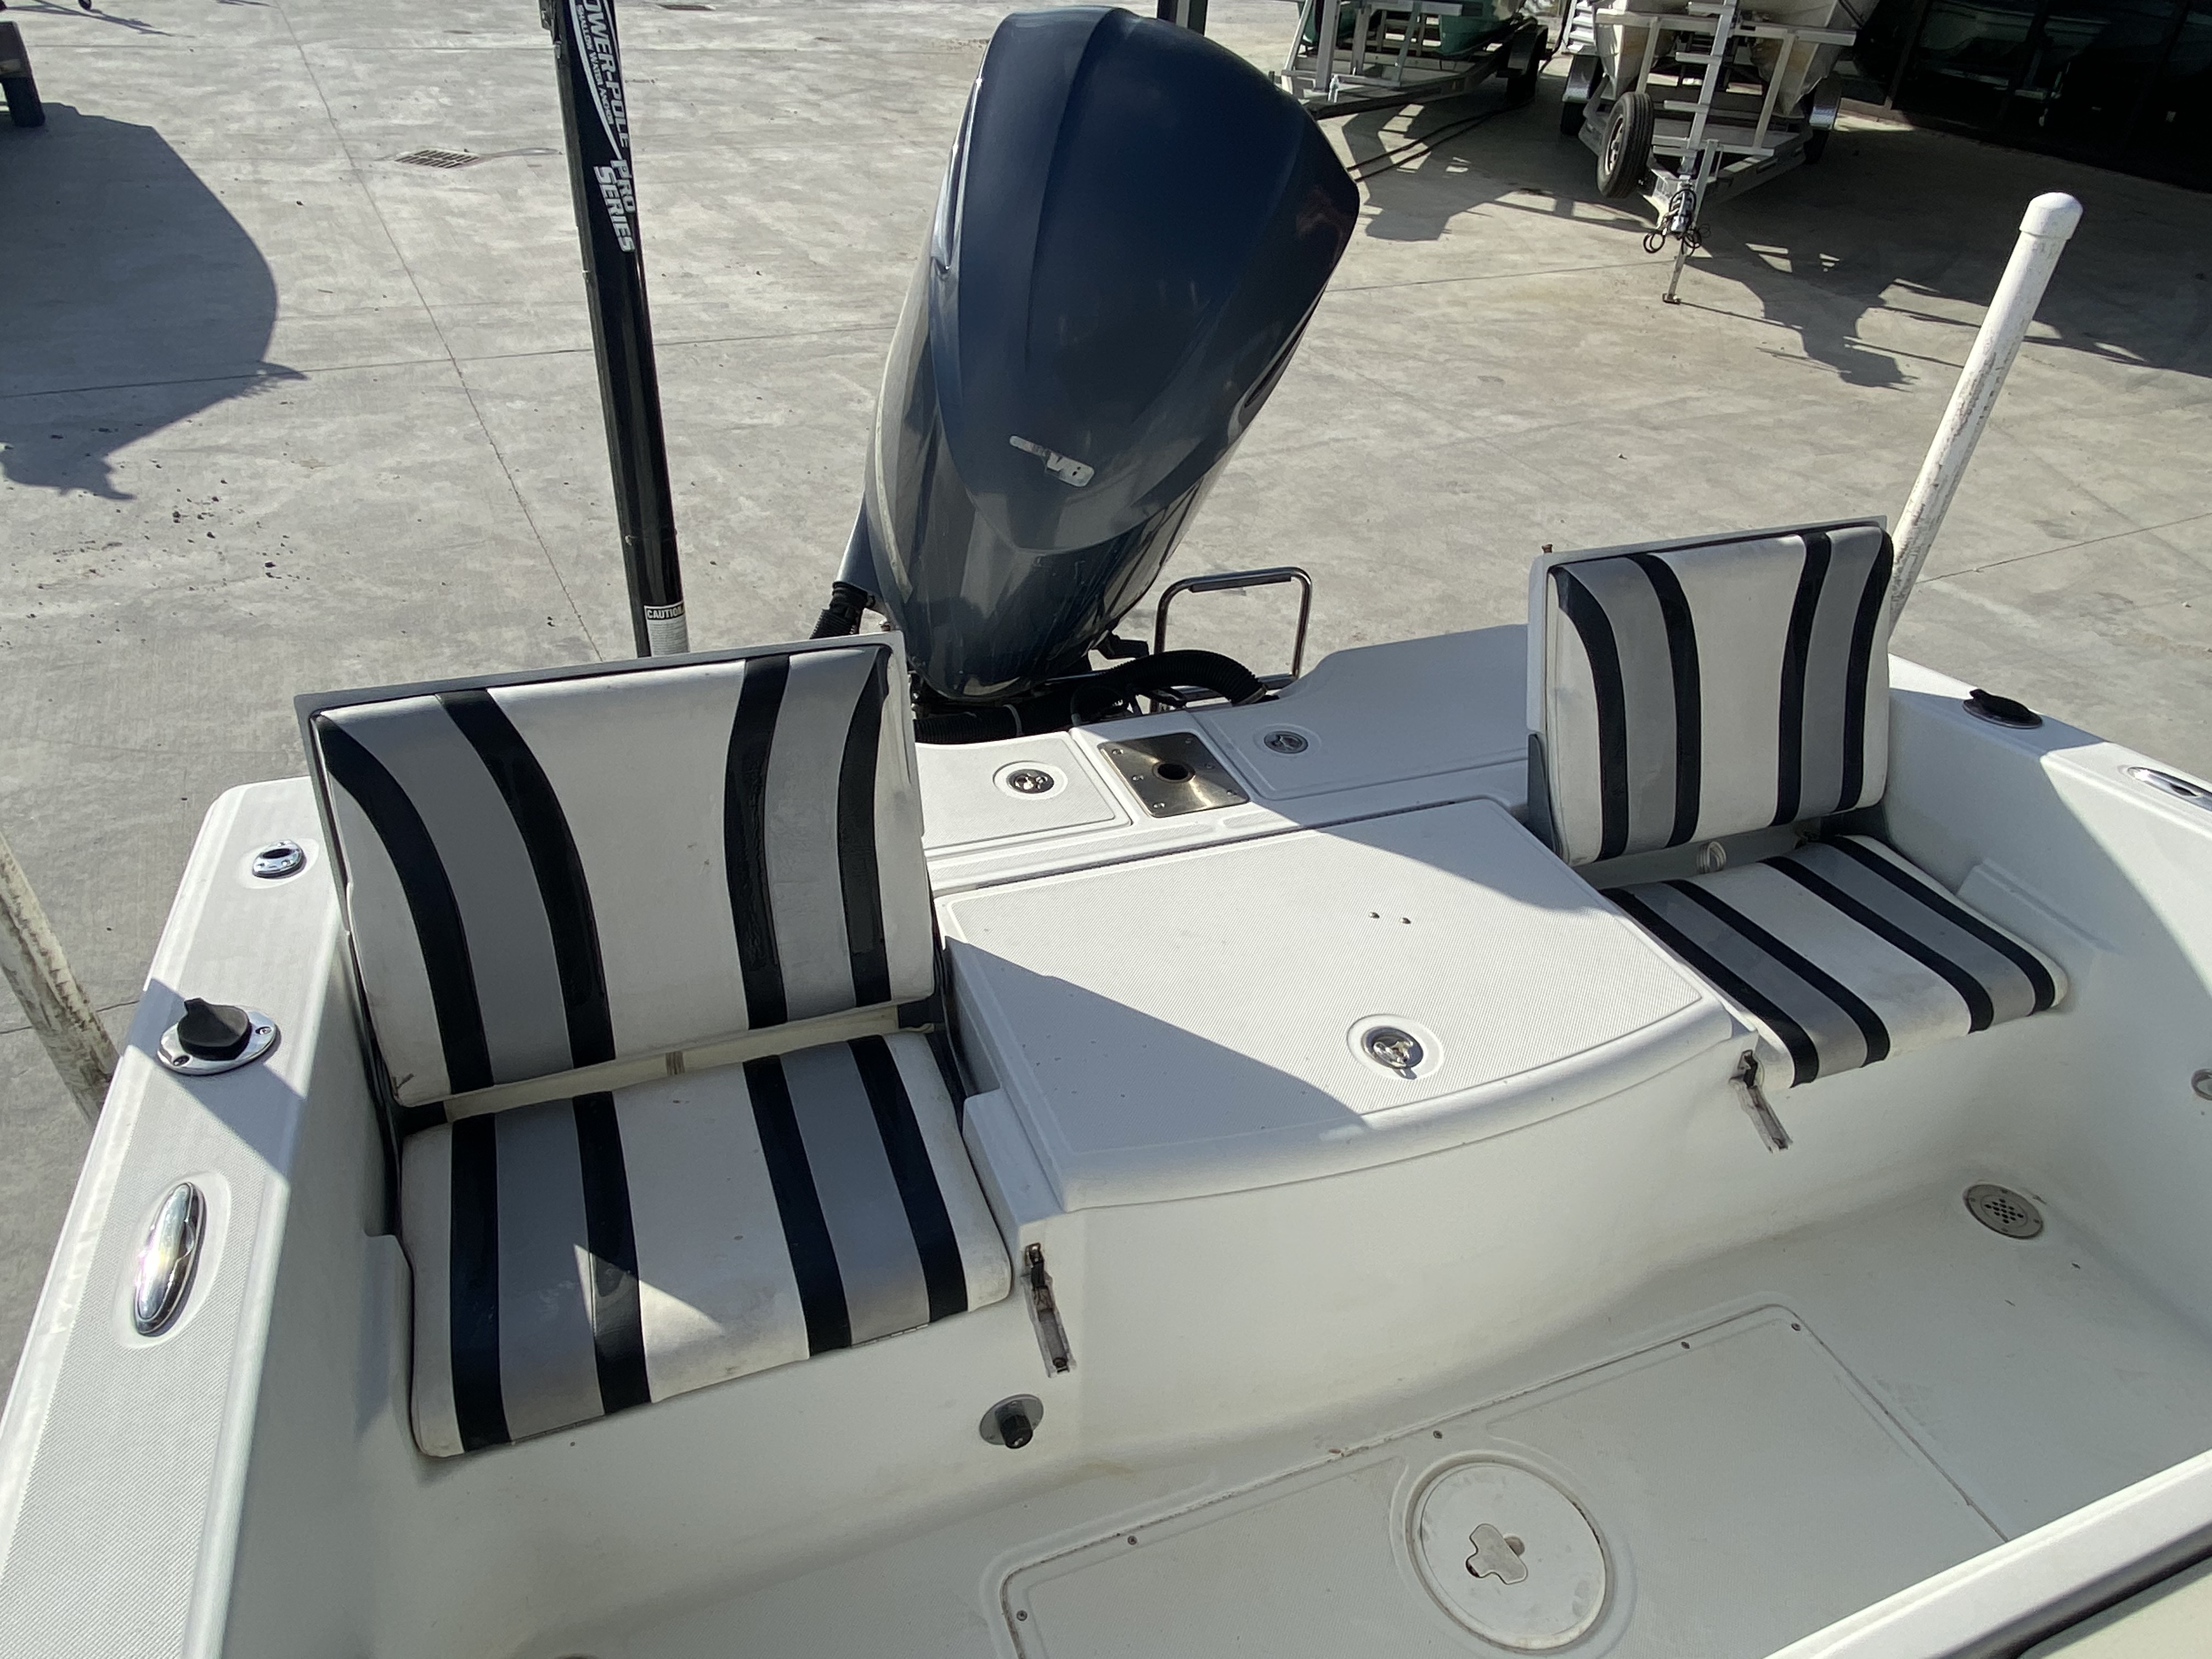 2010 Champion boat for sale, model of the boat is 25 BAY & Image # 24 of 25